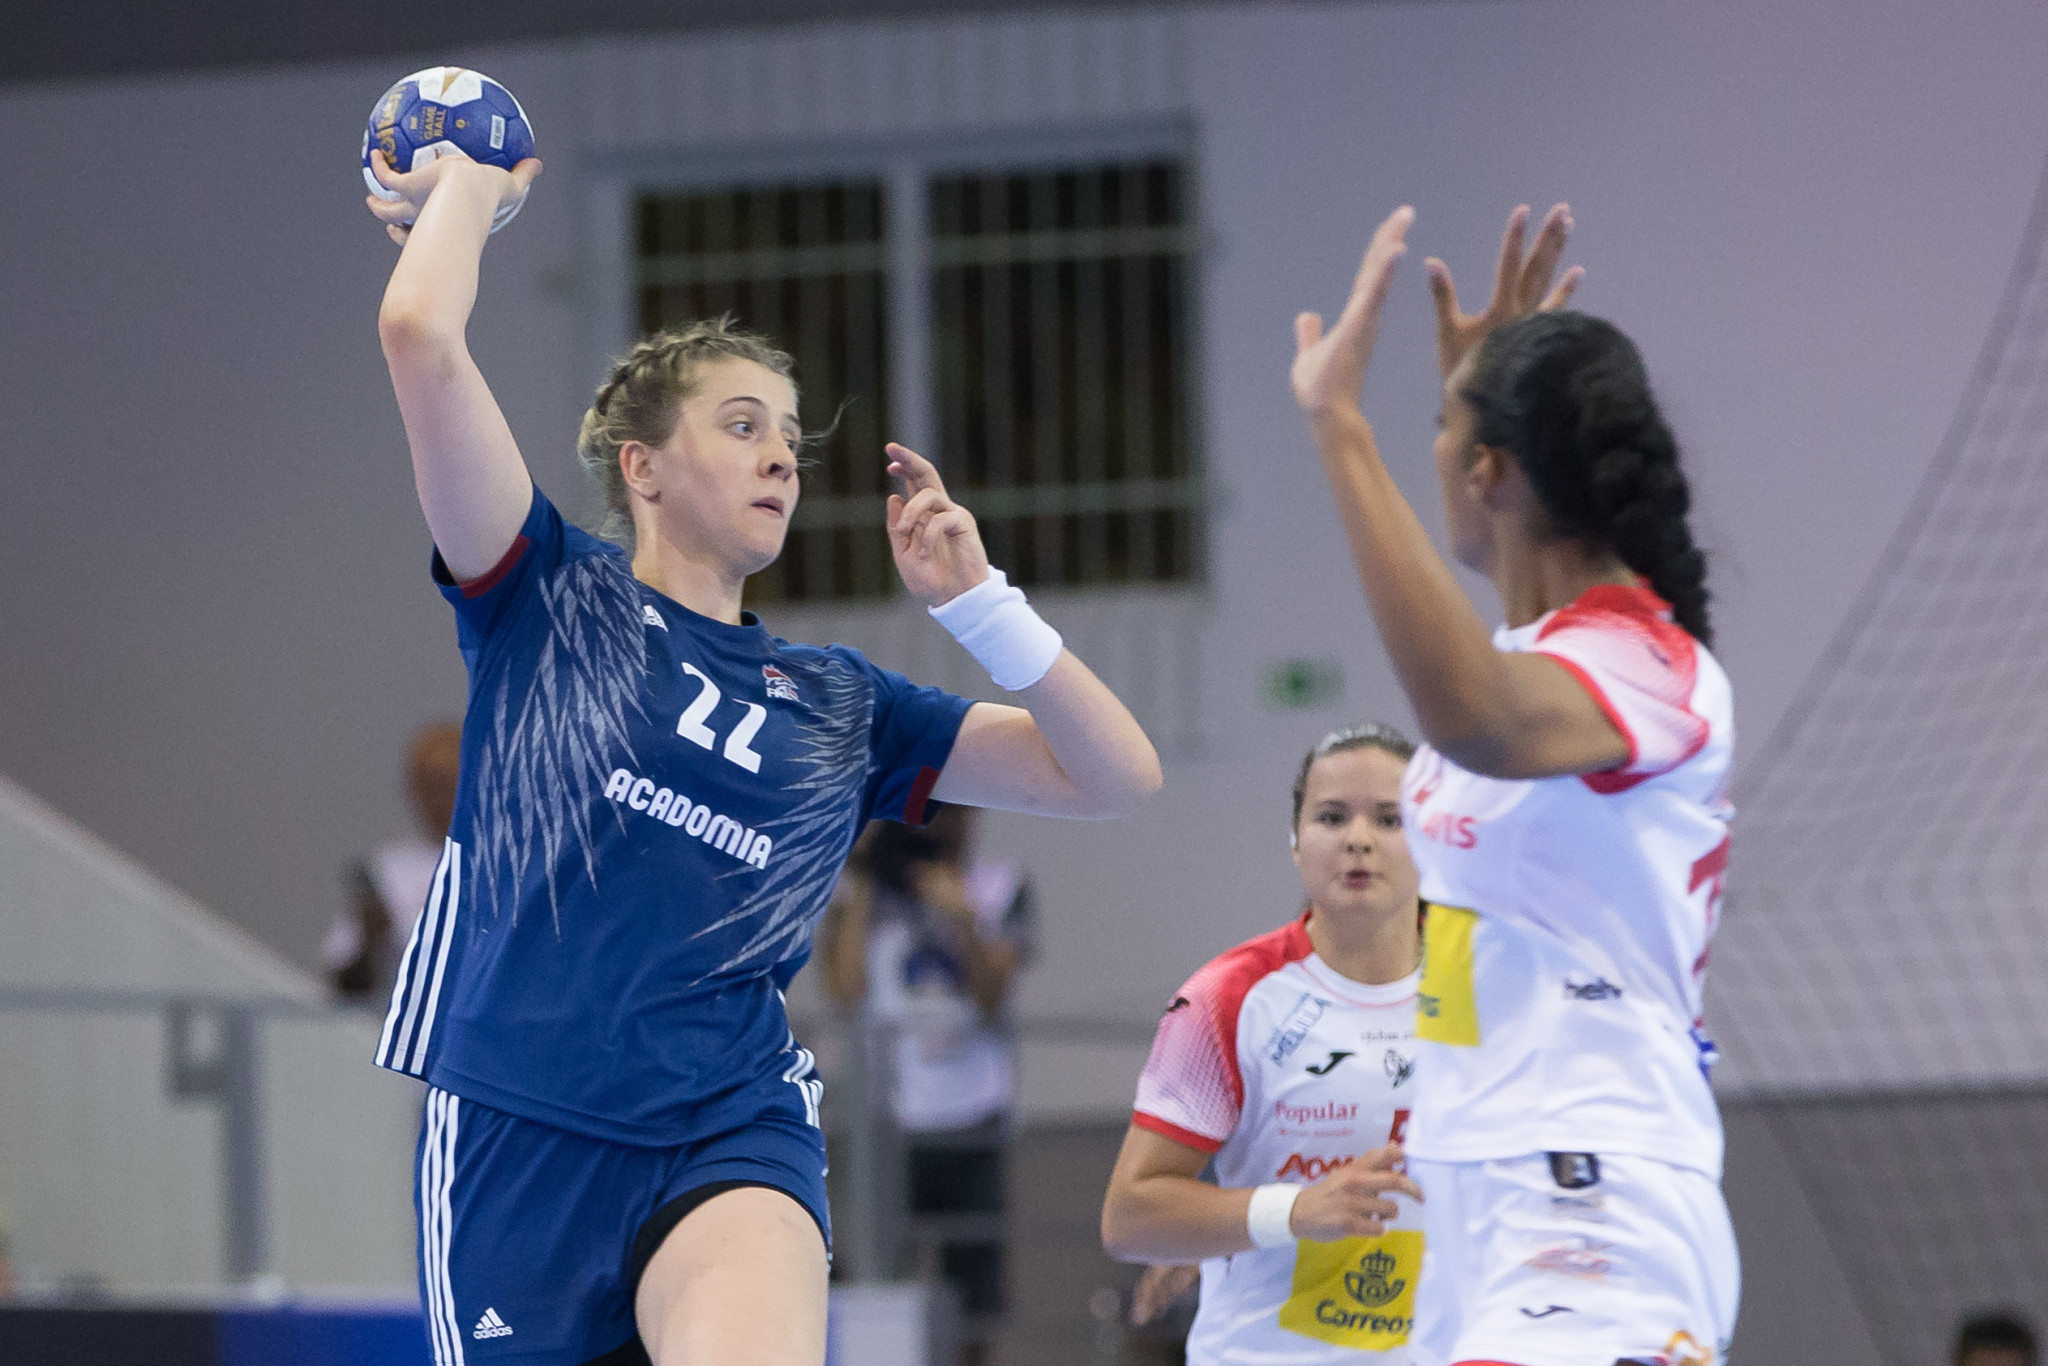 The Women's Junior World Handball Championship in Debrecen is nearing the end of the group phase ©Debrecen 2018